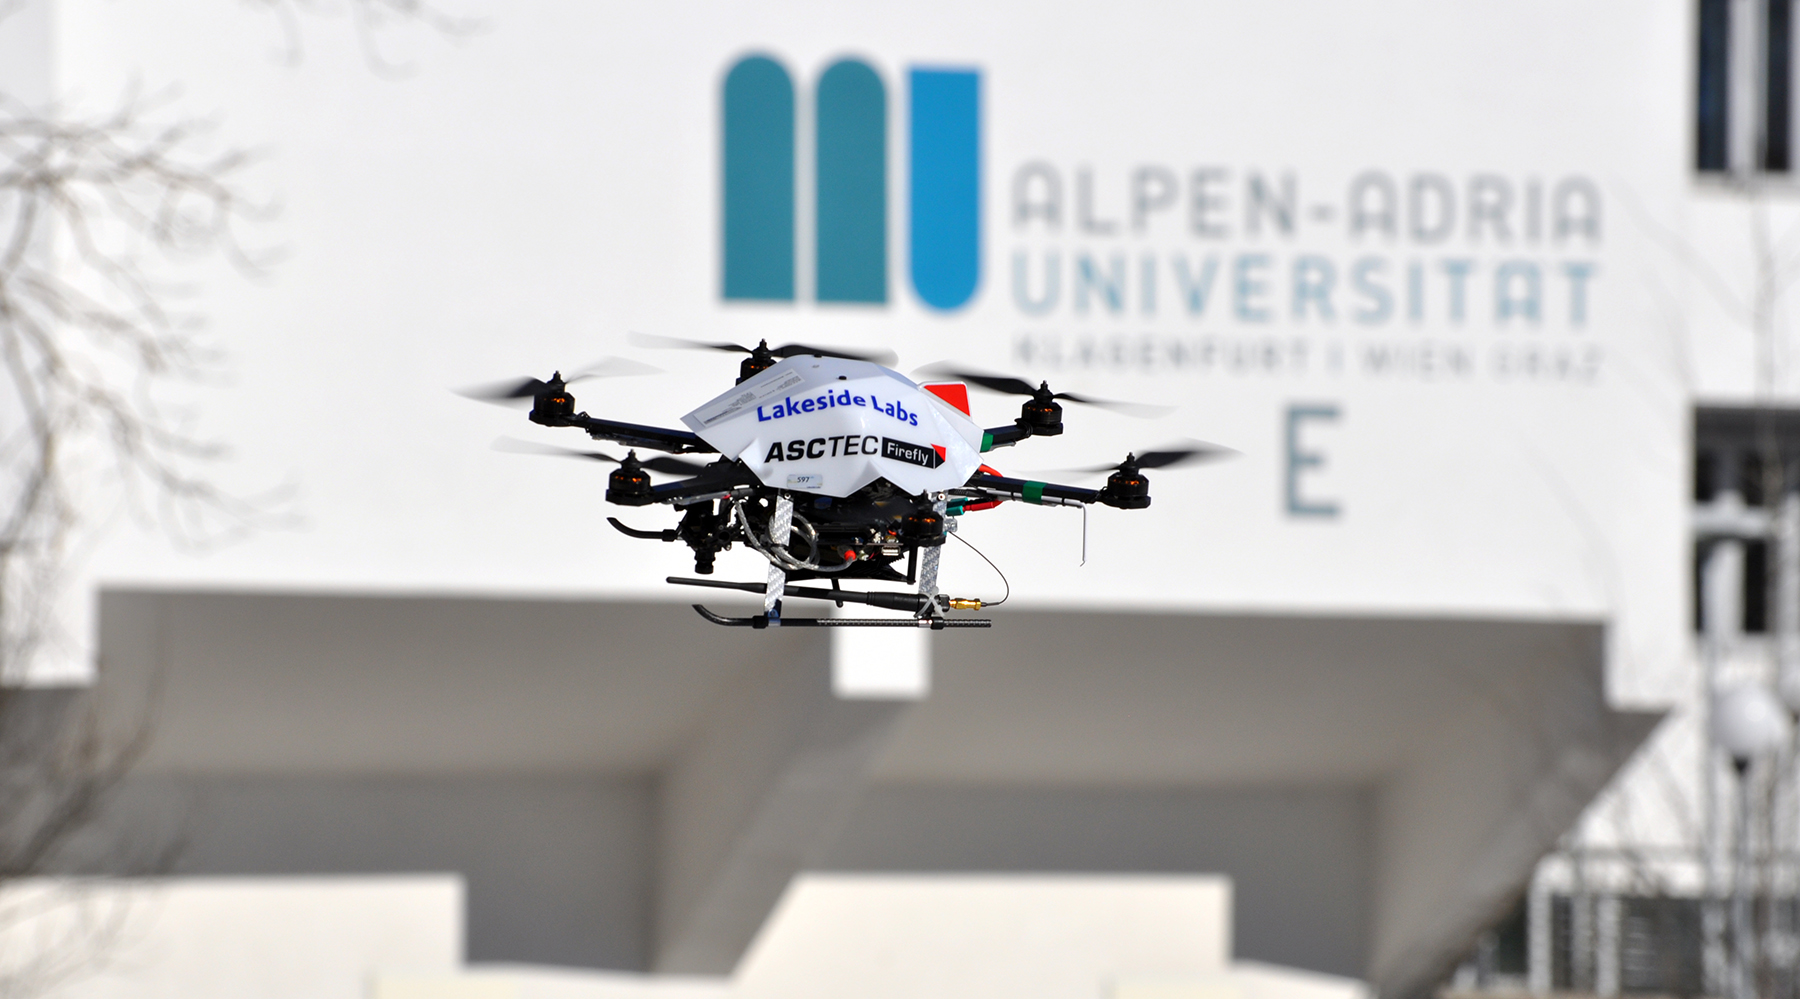 Quadcopter flying on campus